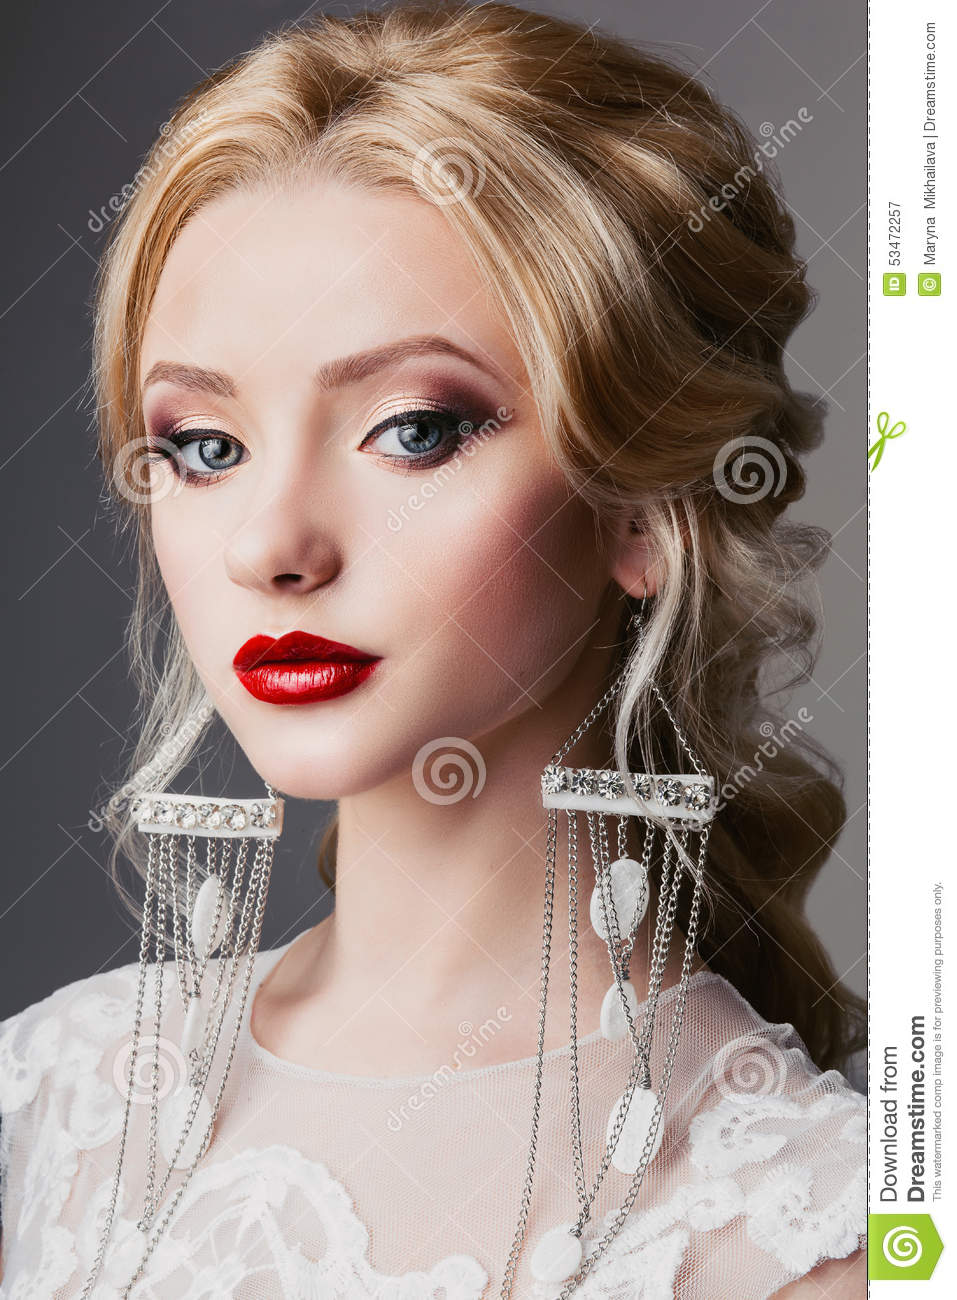 Portrait Of A Beautiful Young Blonde Woman With Long Curly